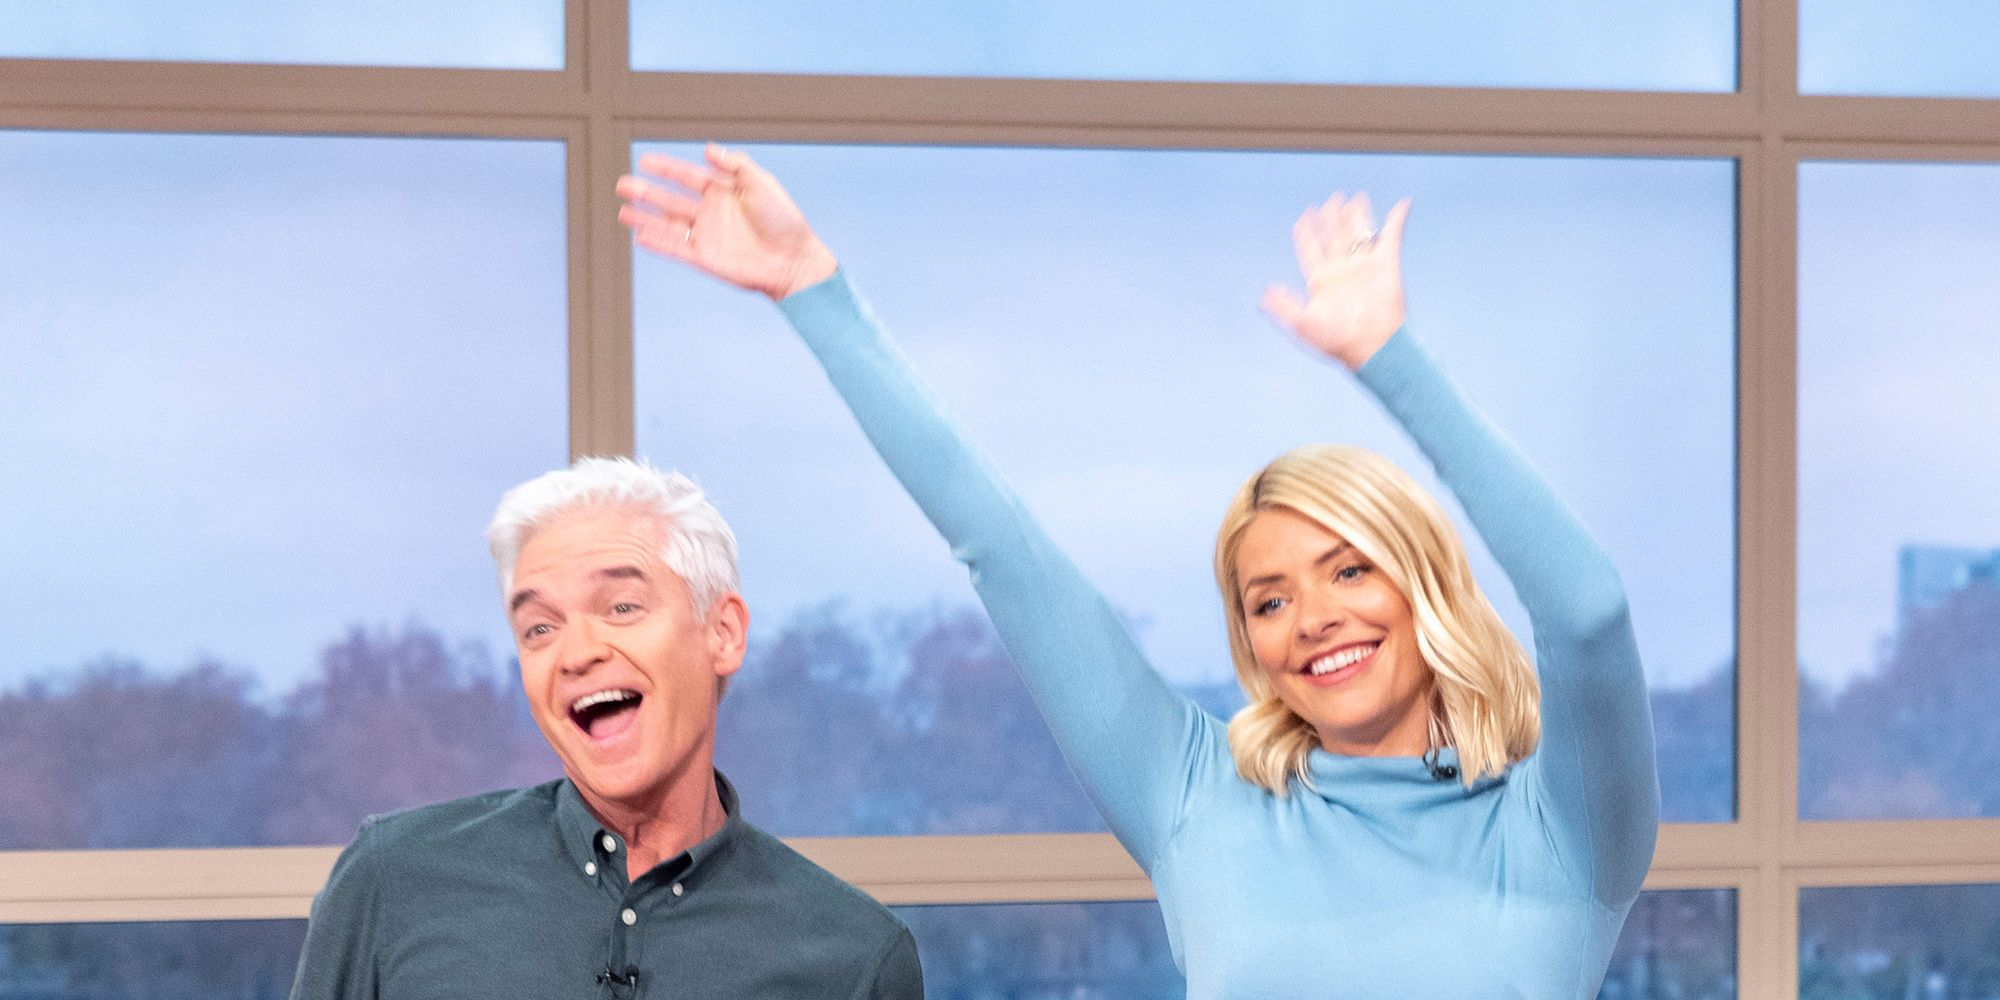 Holly Willoughby This Morning 'This Morning' TV show, London, UK - 07 Jan 2019